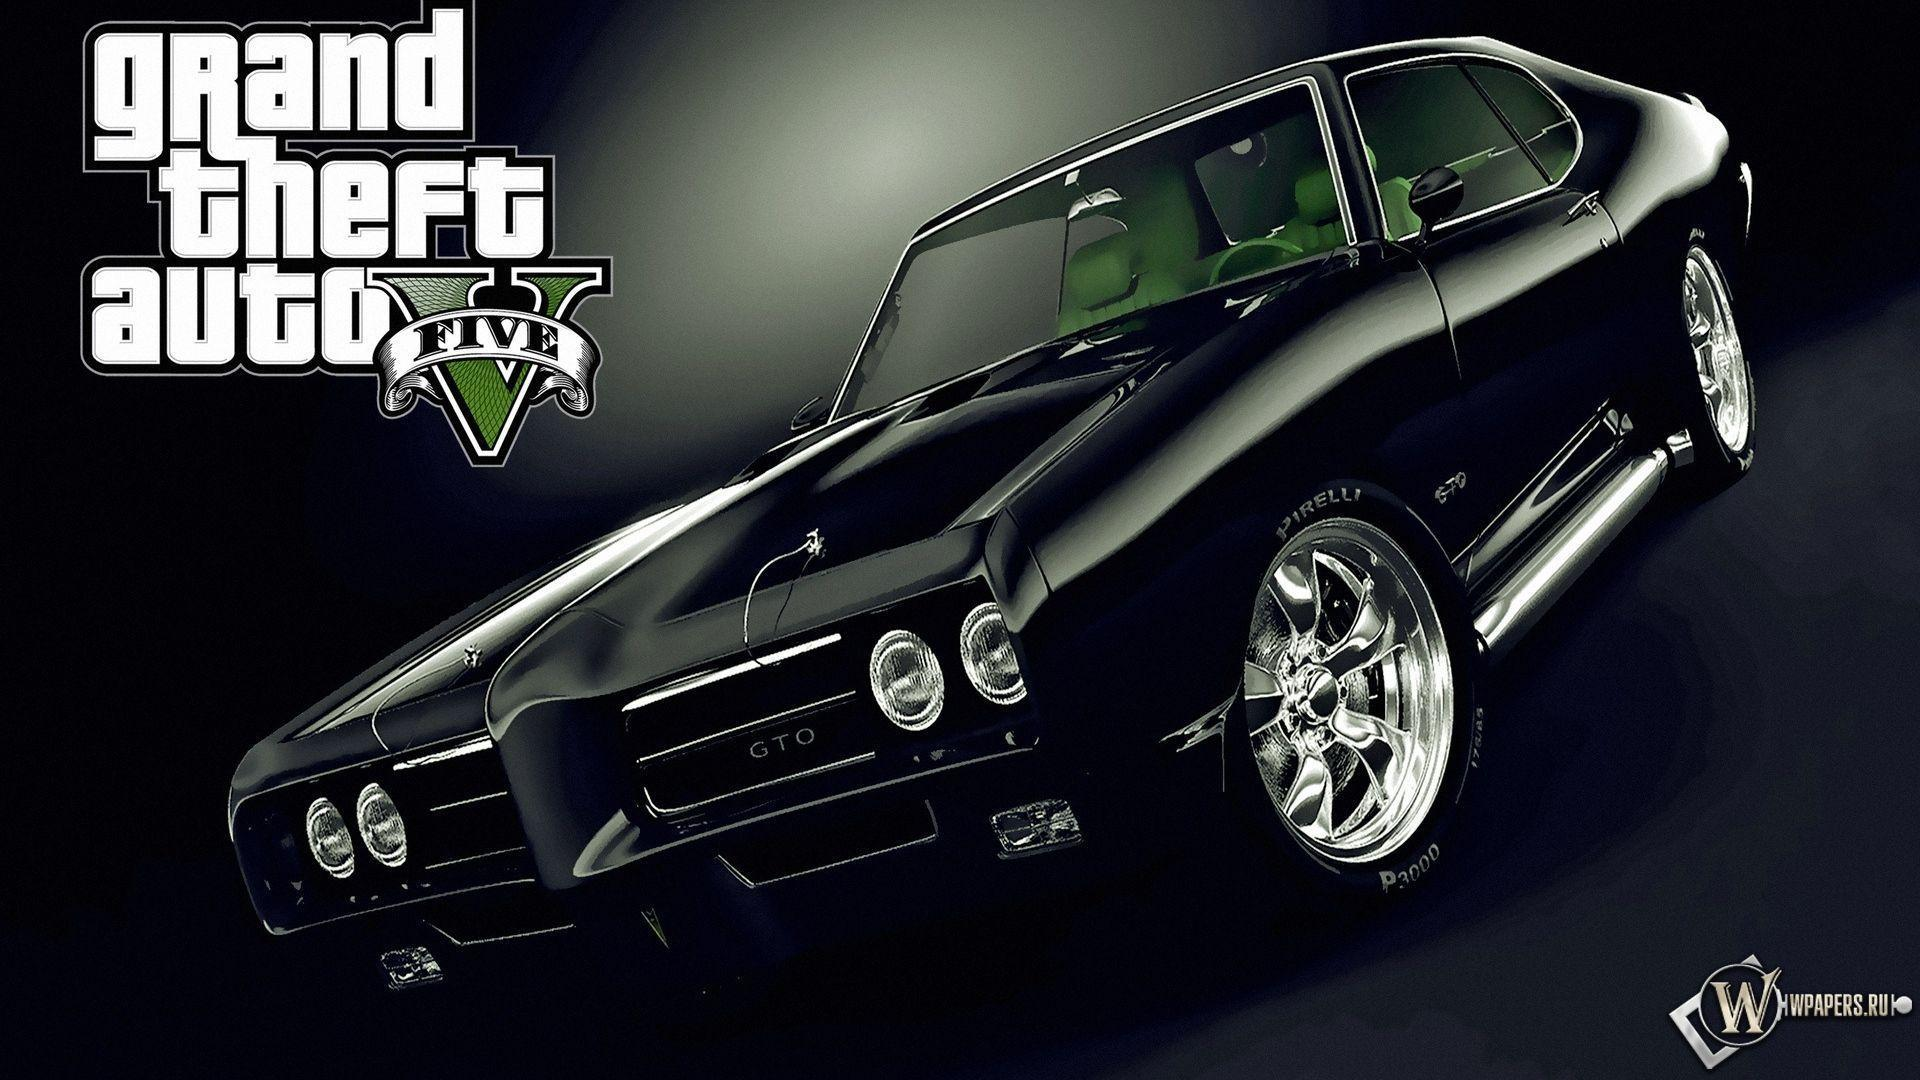 gta 5 | gta 5 » page 7 » Imagens e Frases para Facebook | awesome ...